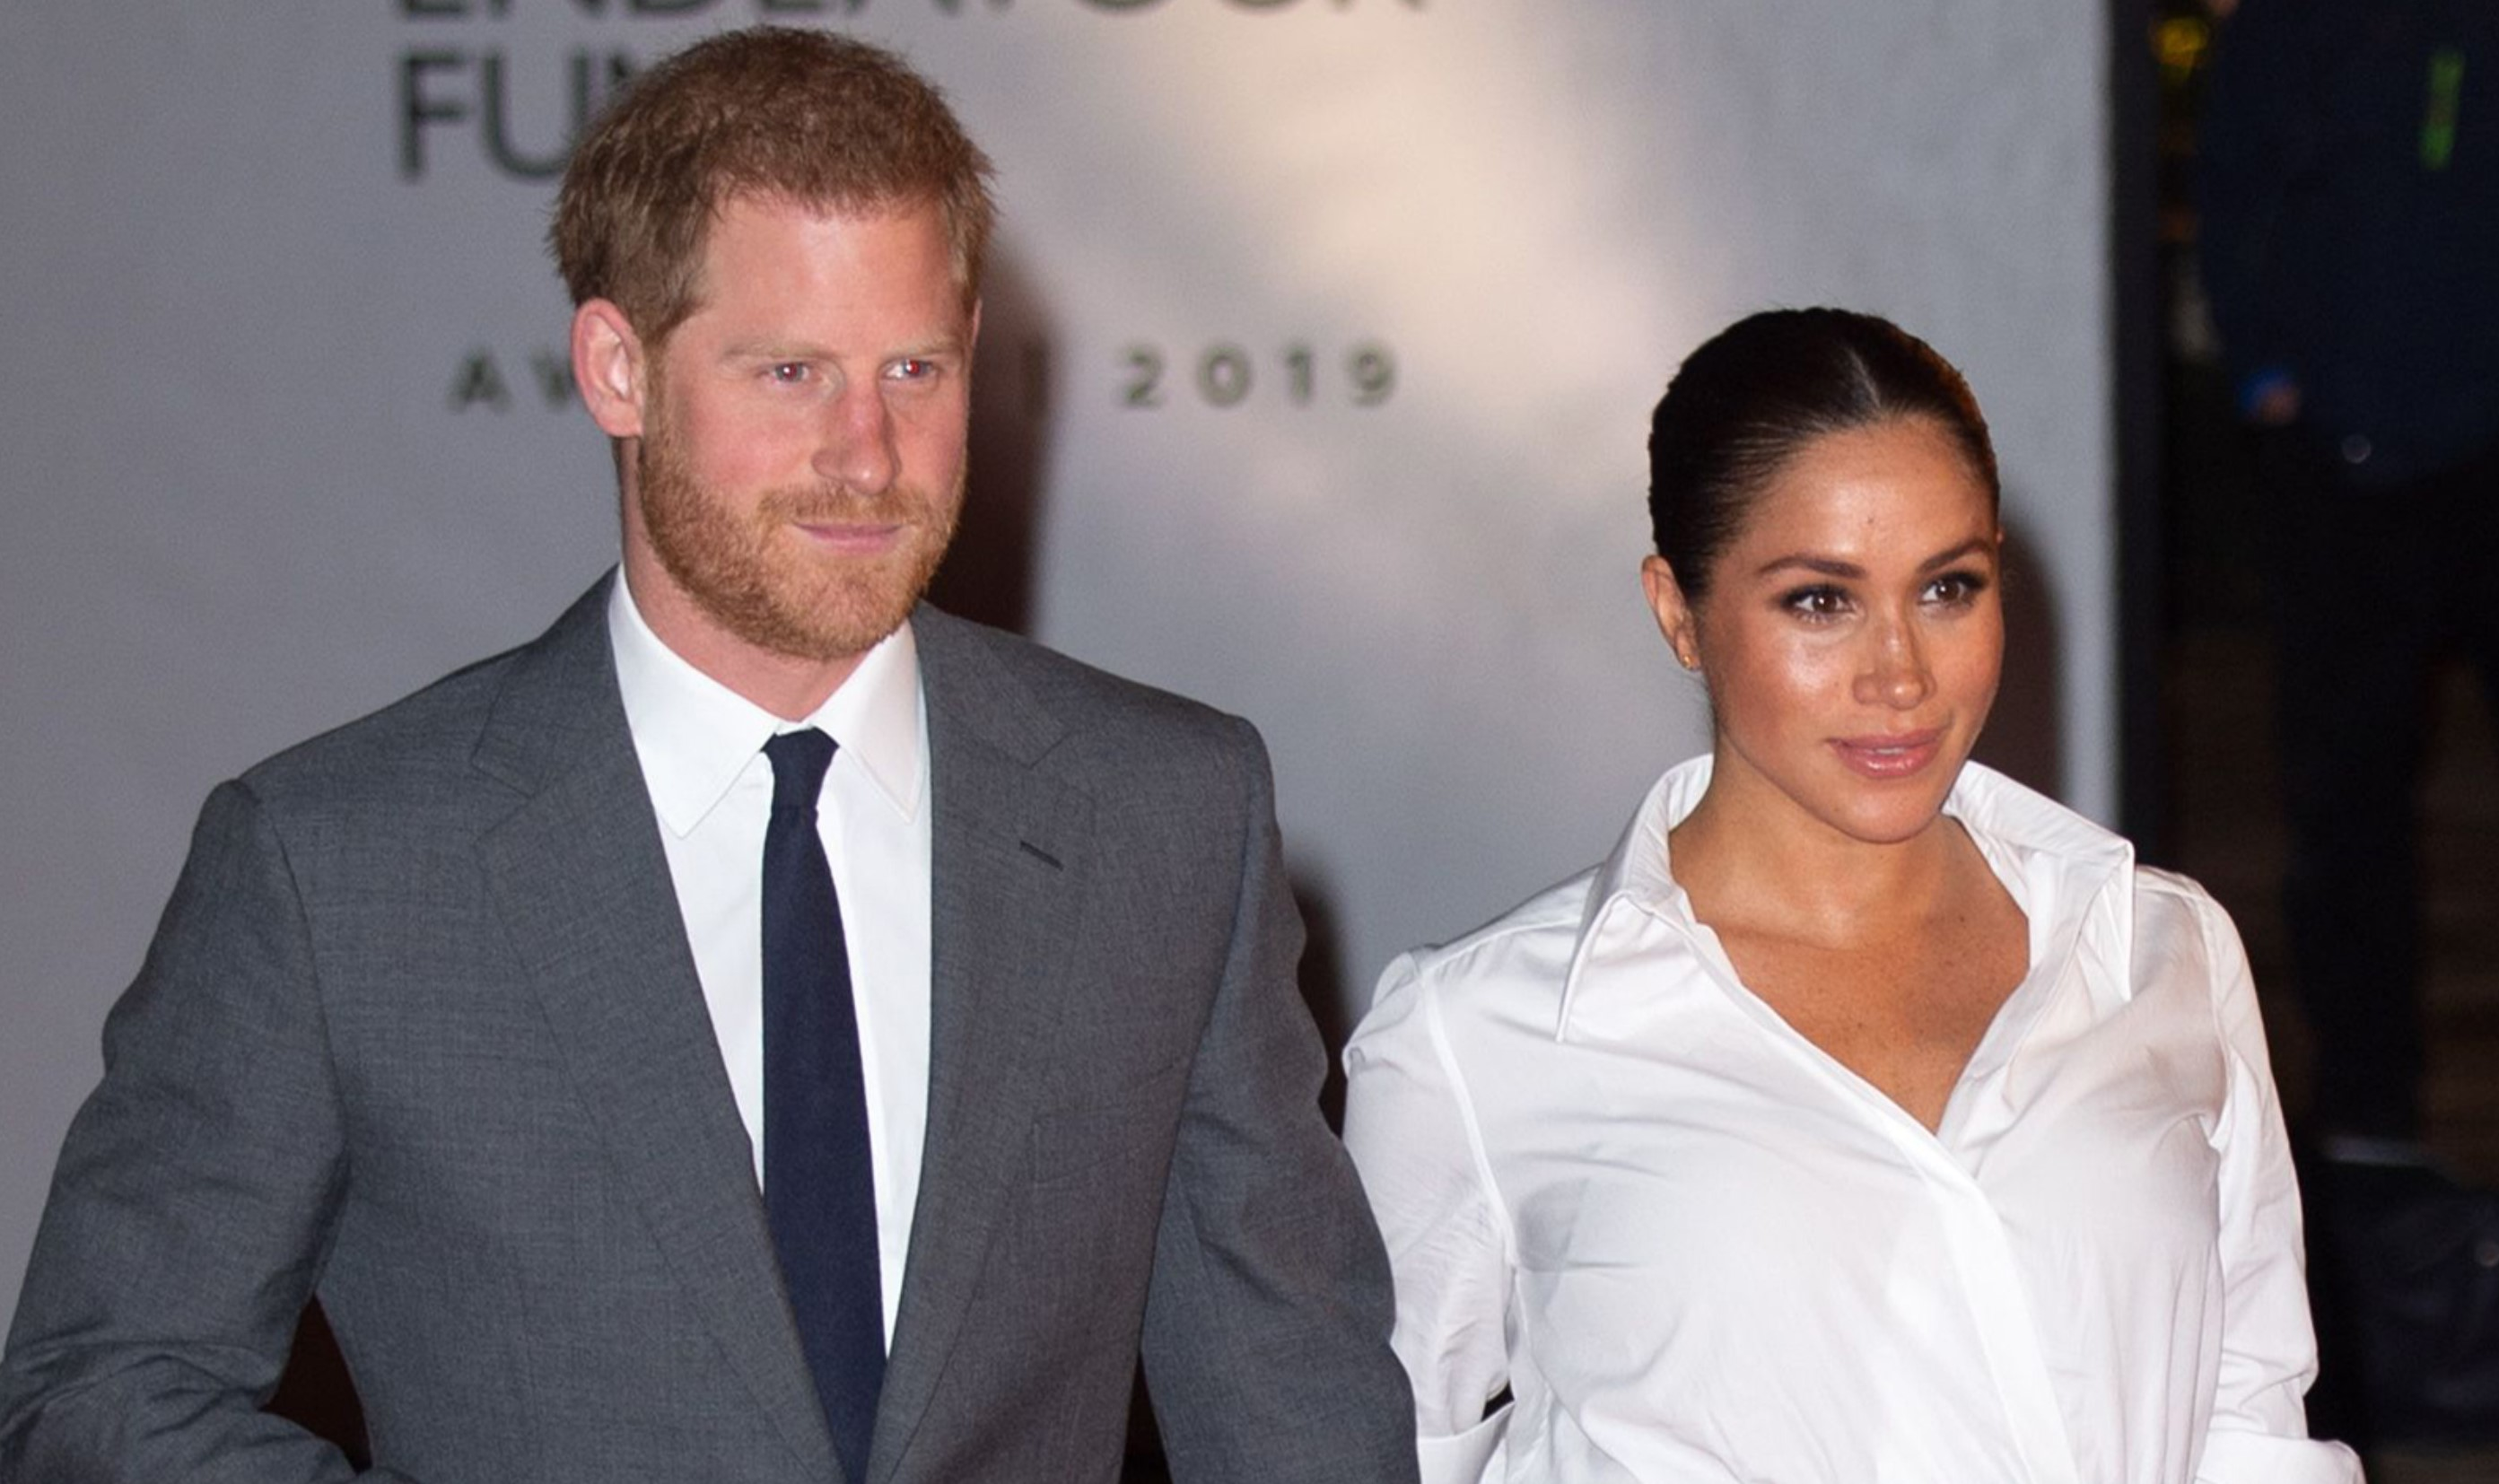 Bookies slash odds on Harry and Meghan's baby being born this weekend